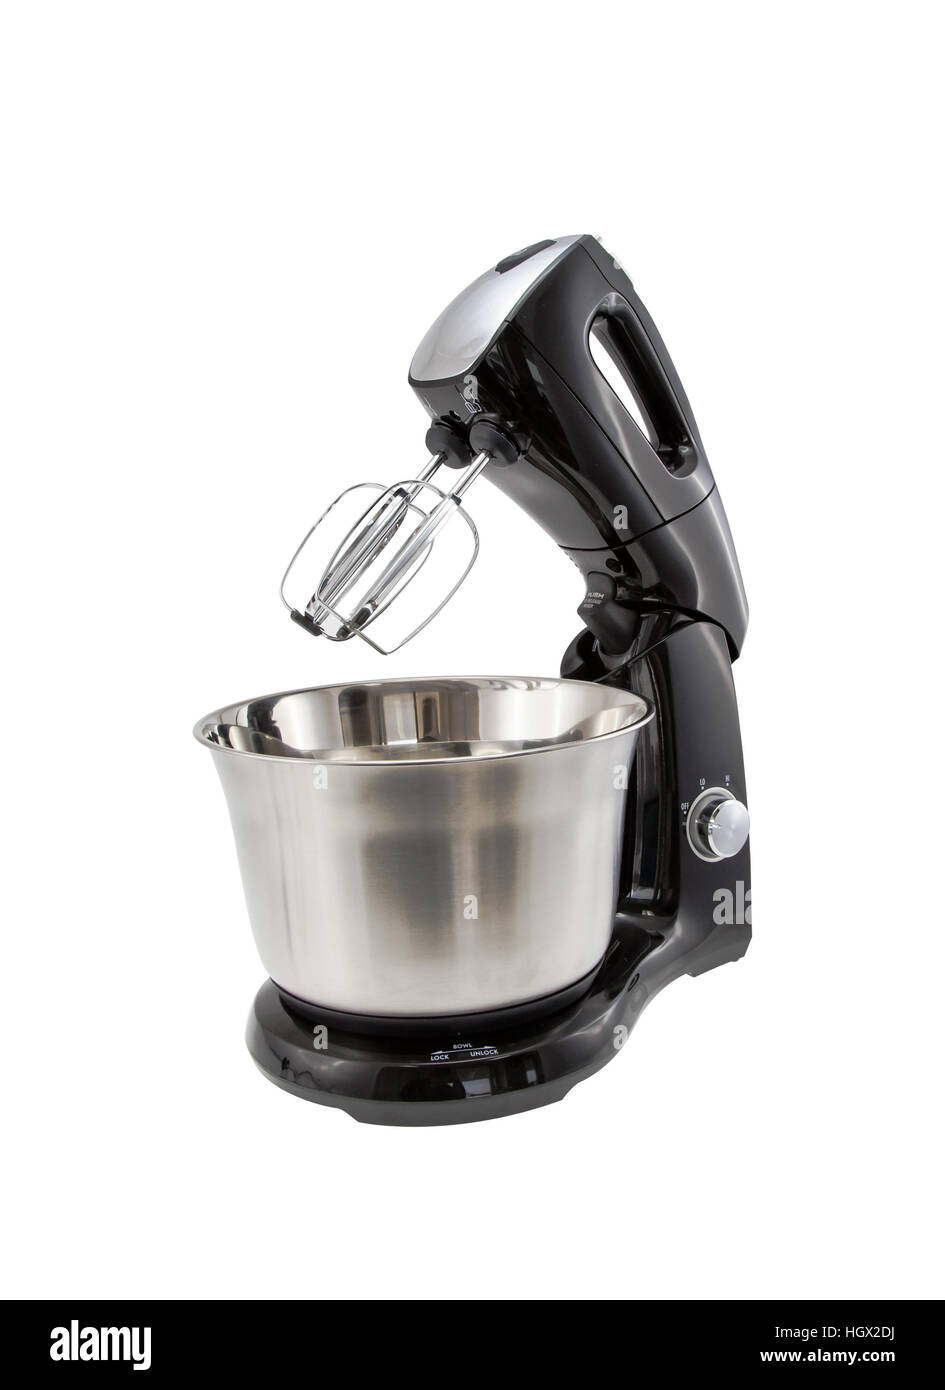 Food Mixer High Resolution Stock Photography and Images   Alamy